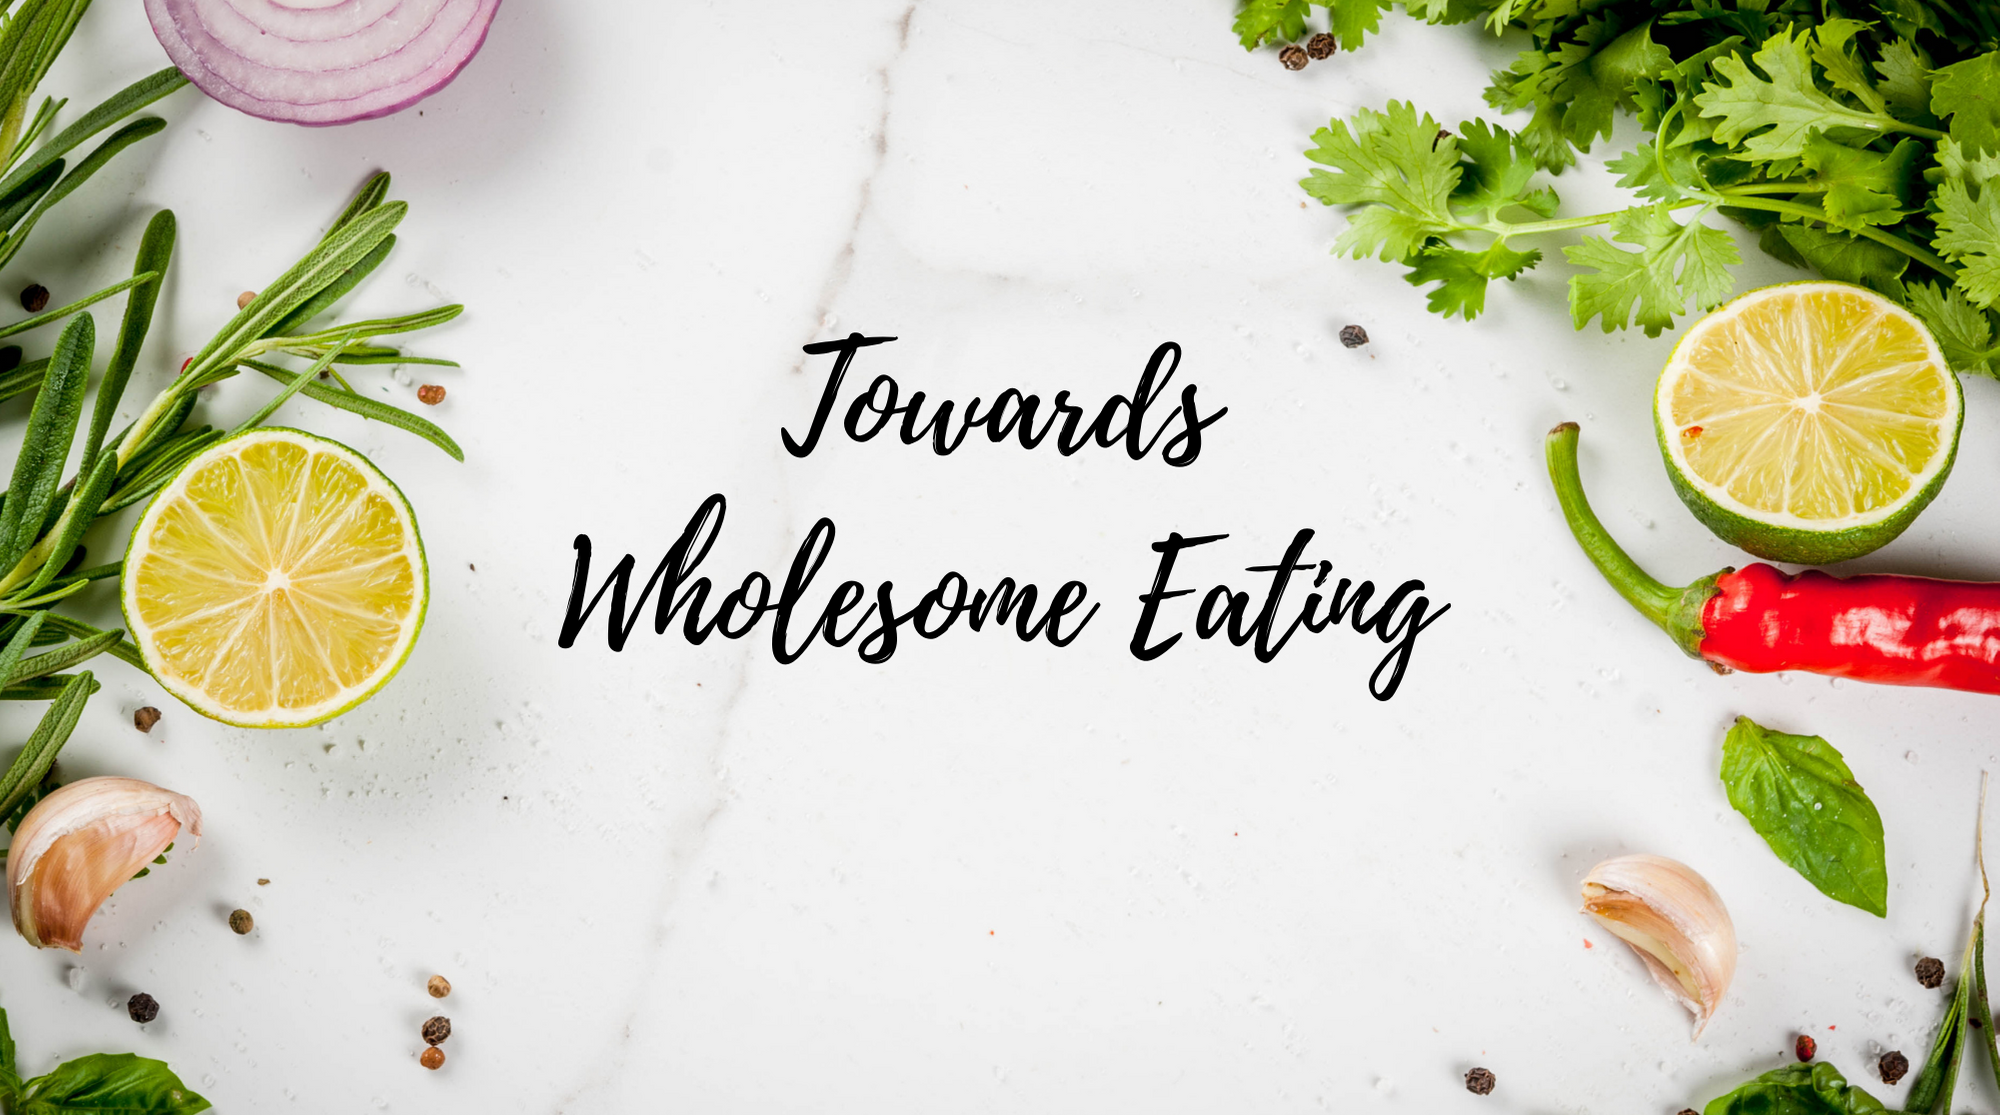 Towards Wholesome Eating